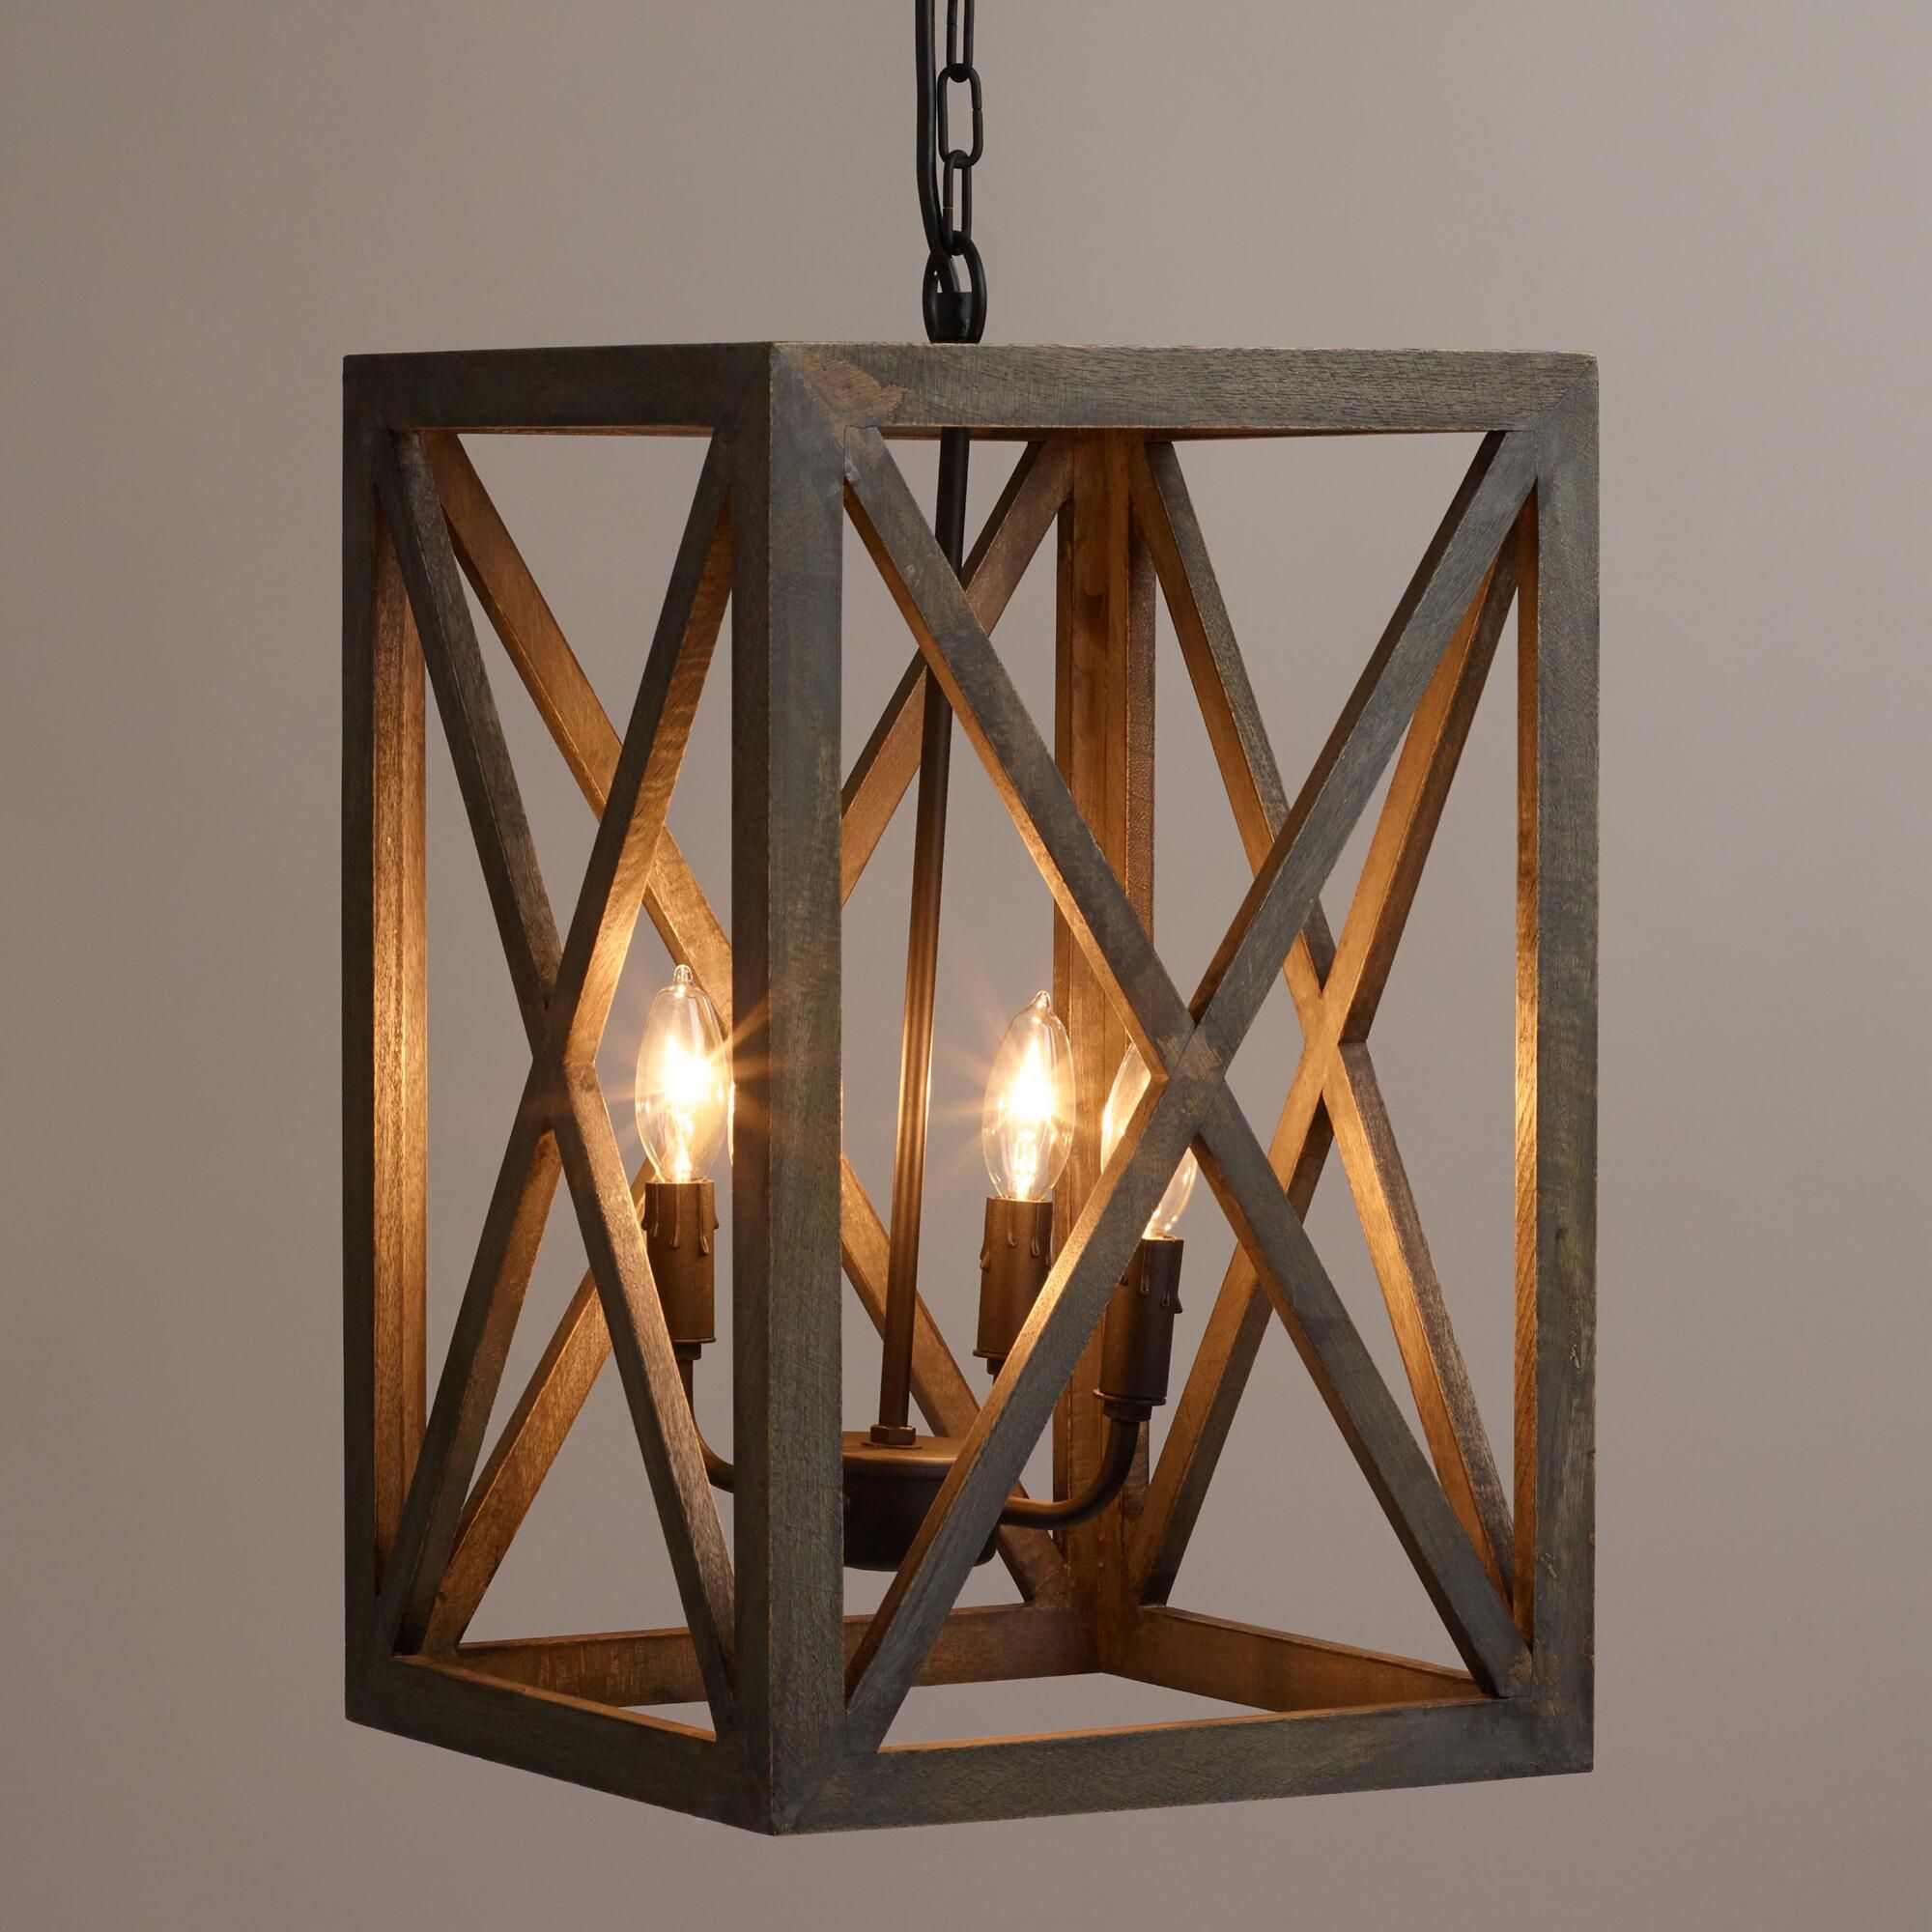 Gray wood and iron valencia chandelier open frame home for Wood pendant chandelier